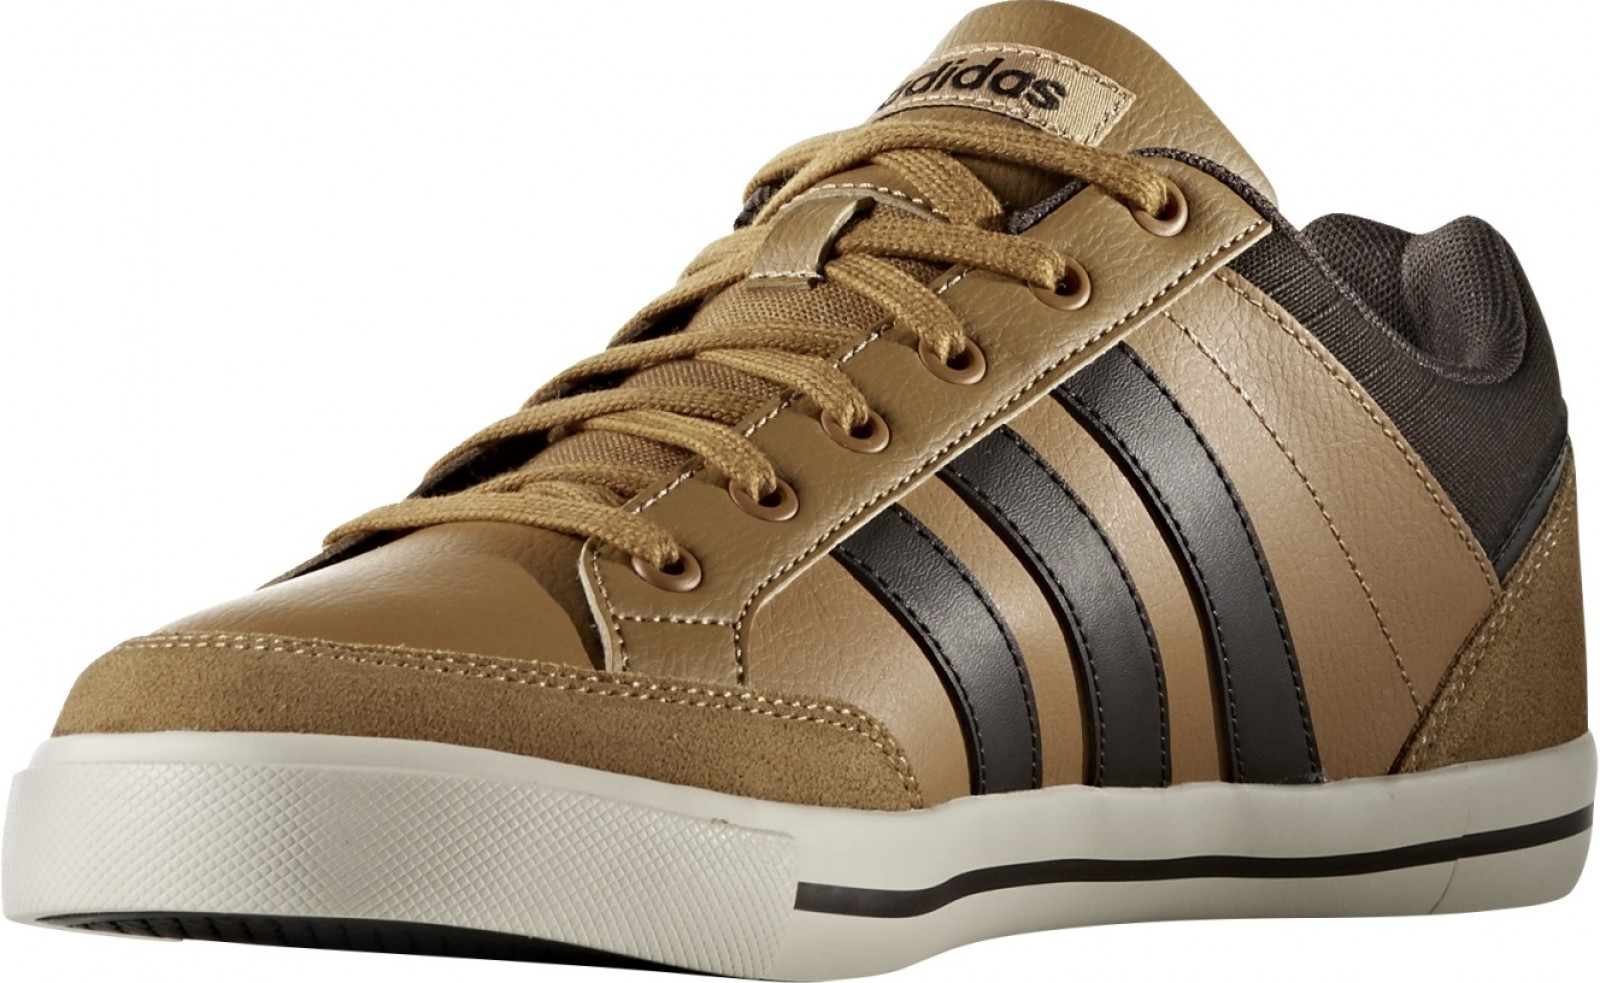 Adidas Neo Shoes CACITY Brown Black